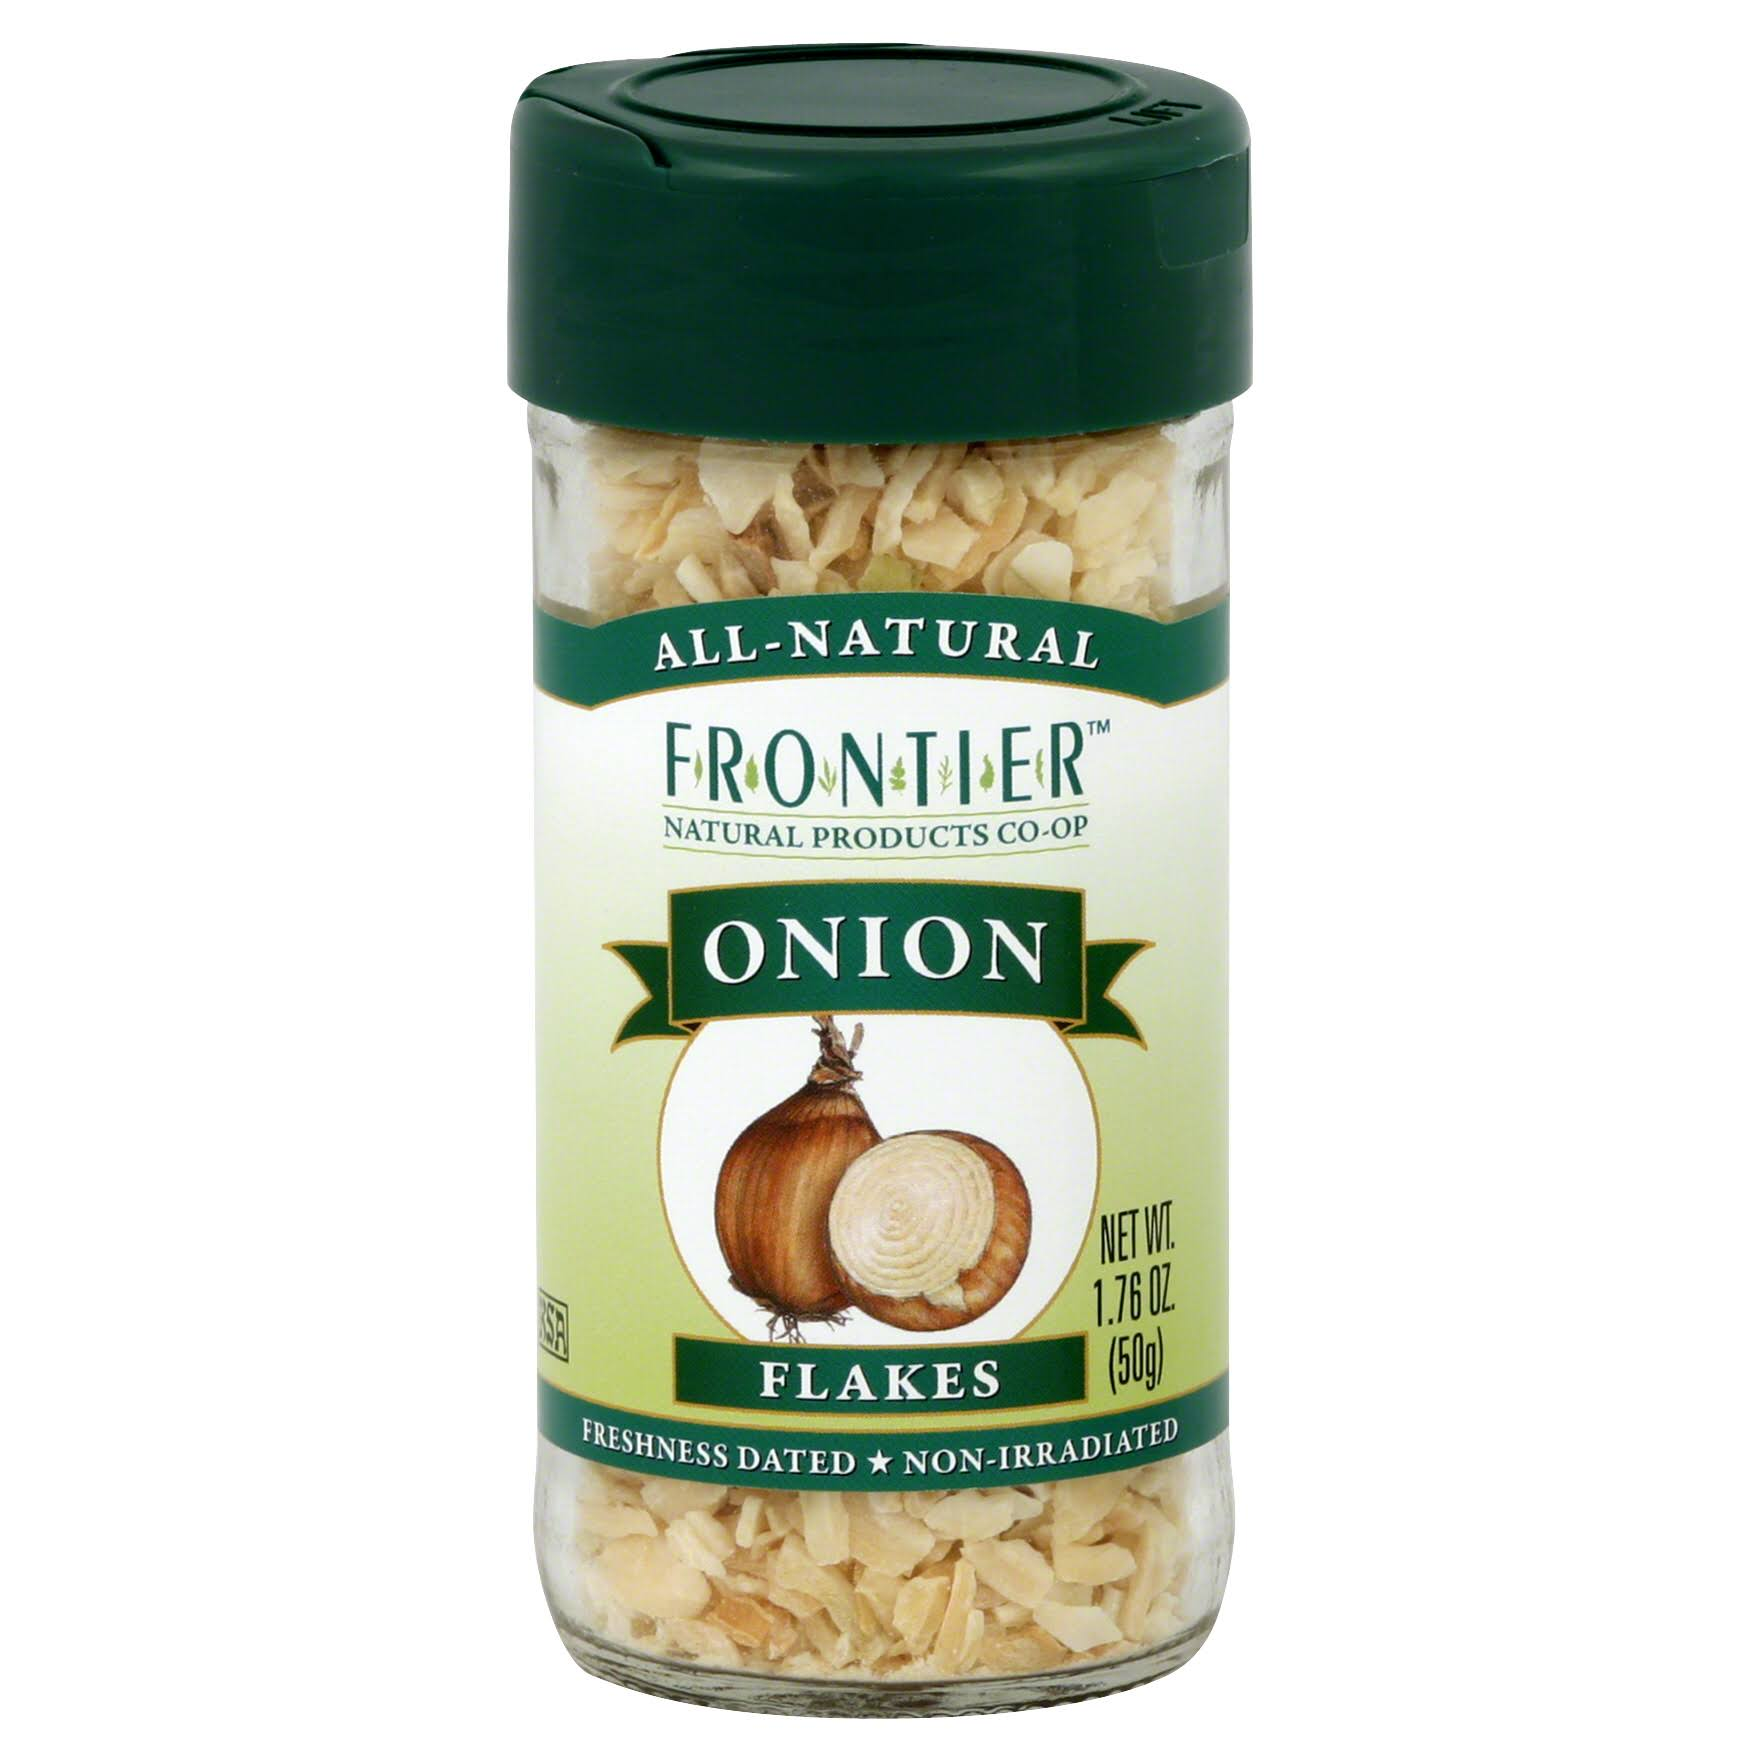 Frontier Natural Products Onion - White Flakes, 1.3oz